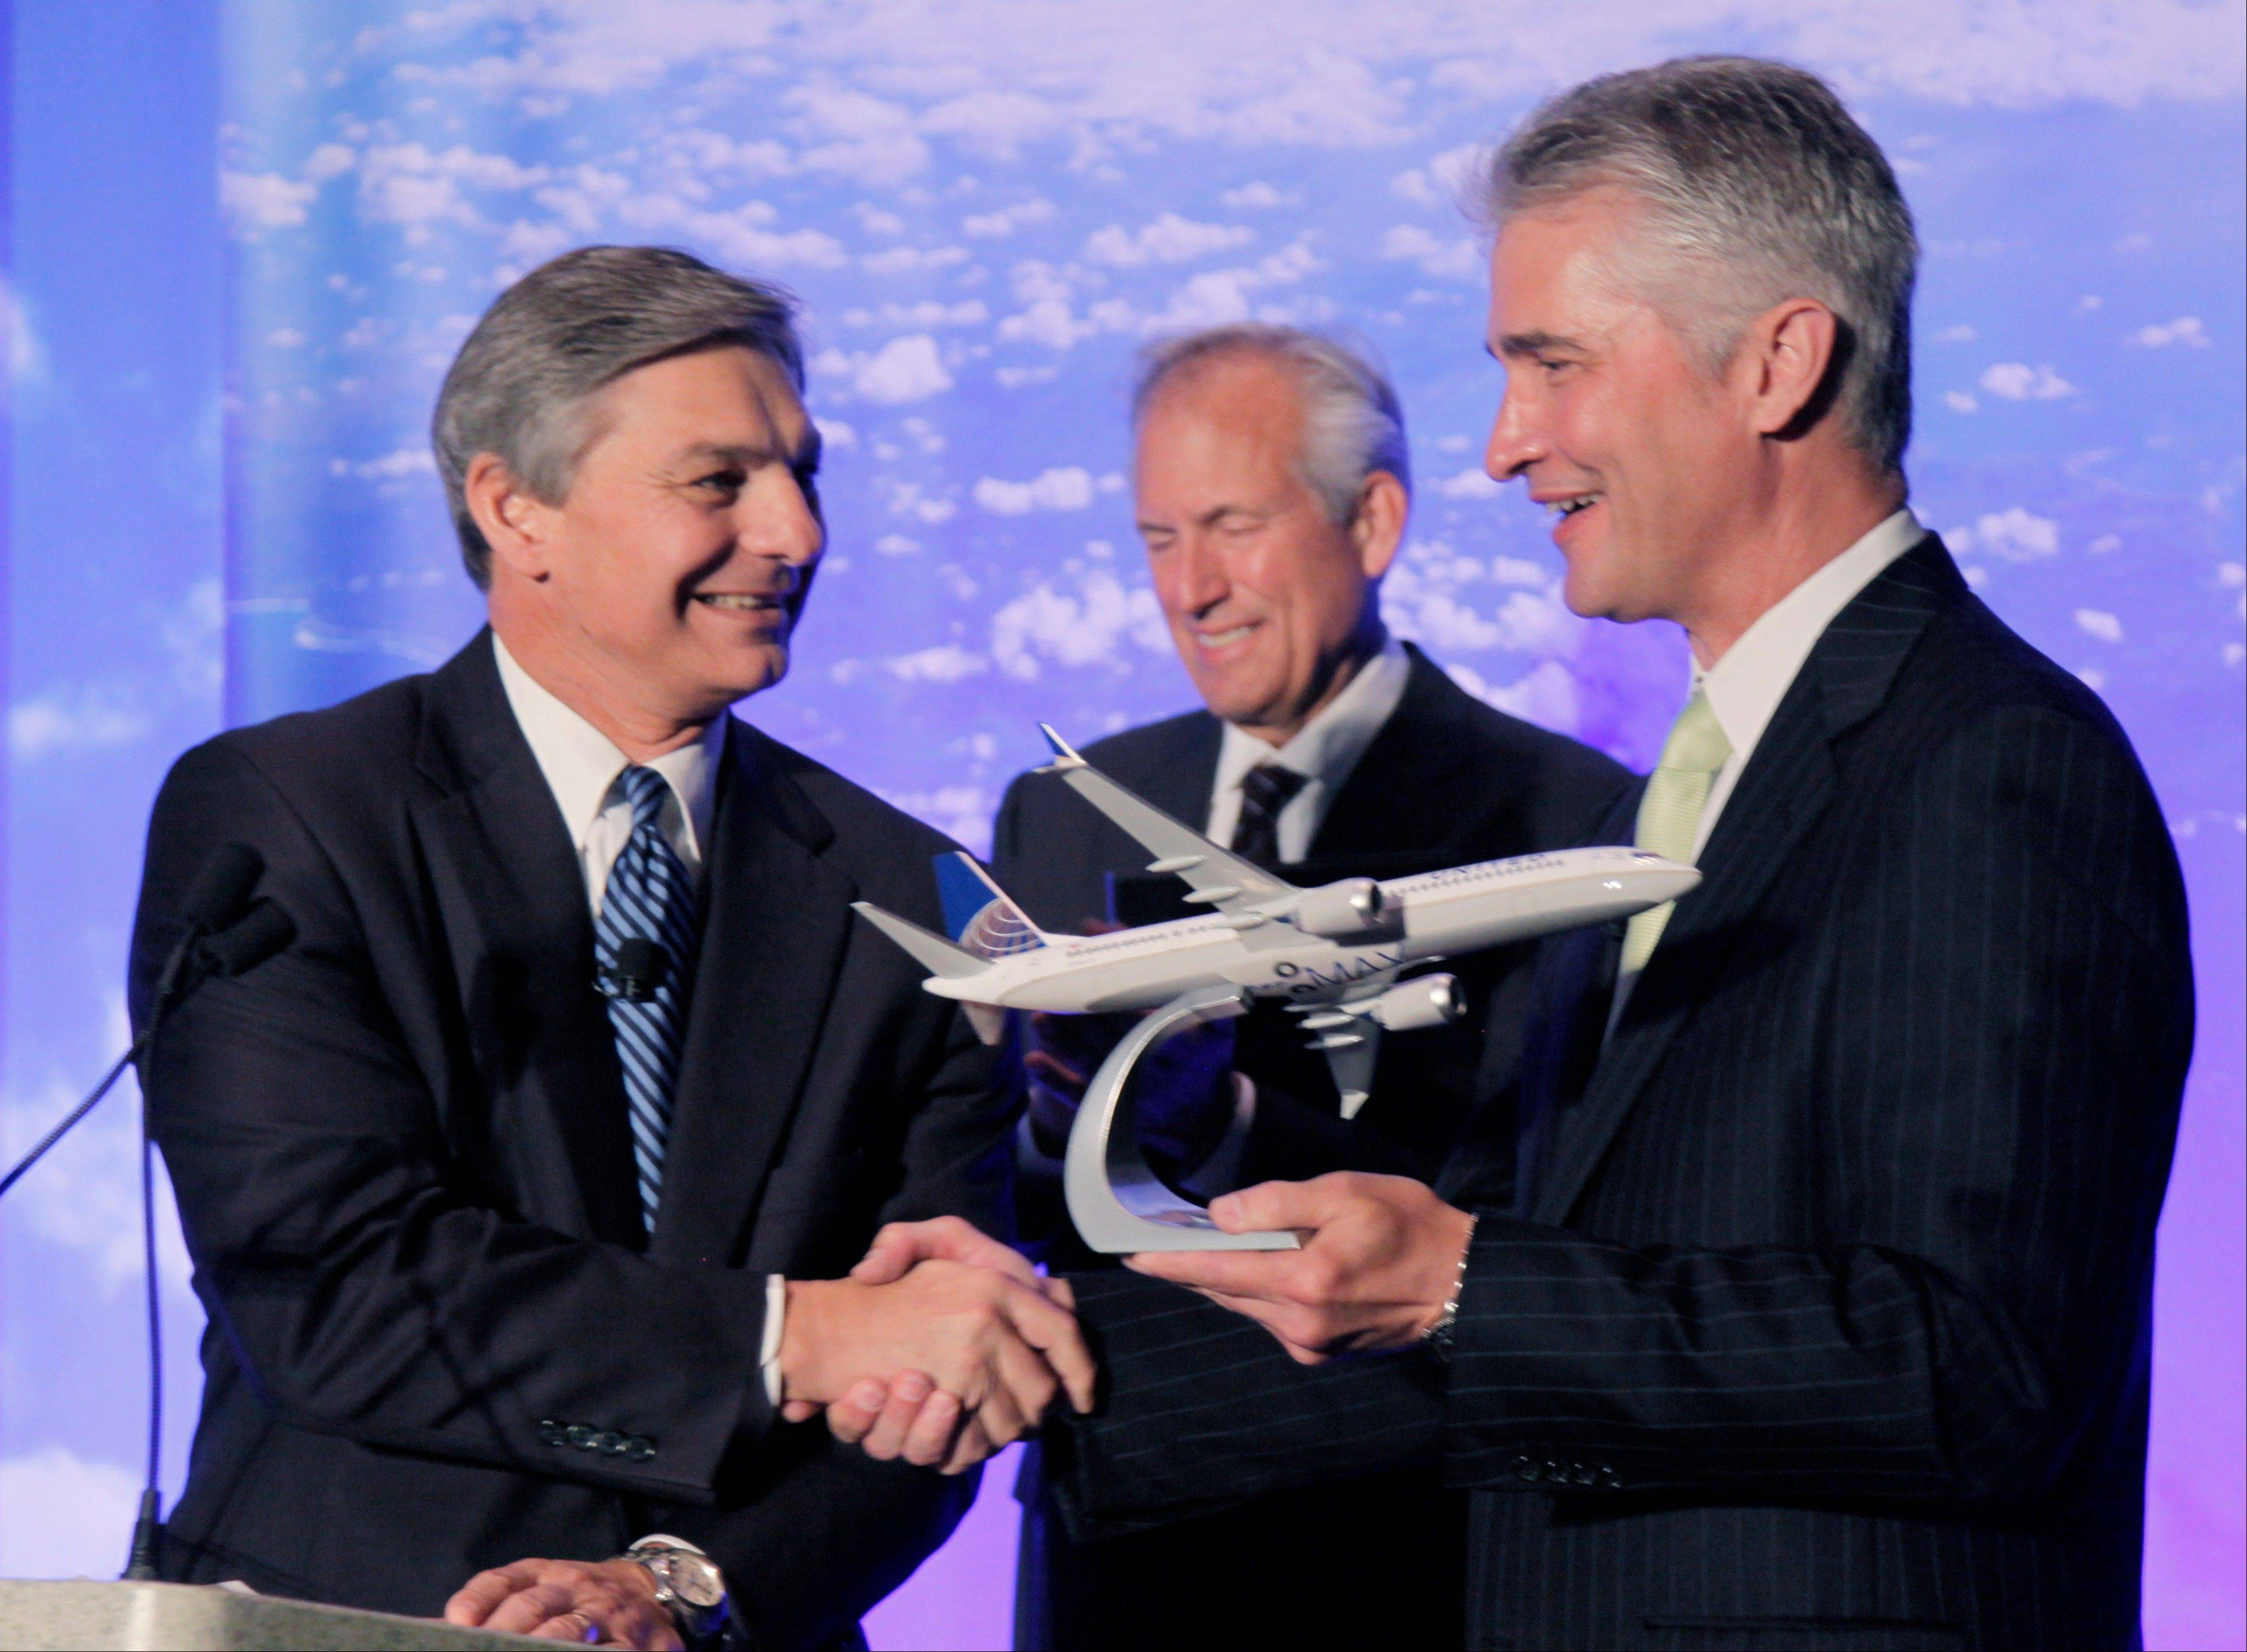 Boeing Commercial Airplanes CEO Ray Conner, left, presents a model of Boeing�s new 737 Max 9 to United Airlines CEO Jeff Smisek during a news conference as Boeing CEO Jim McNerney looks on, Thursday in Chicago.